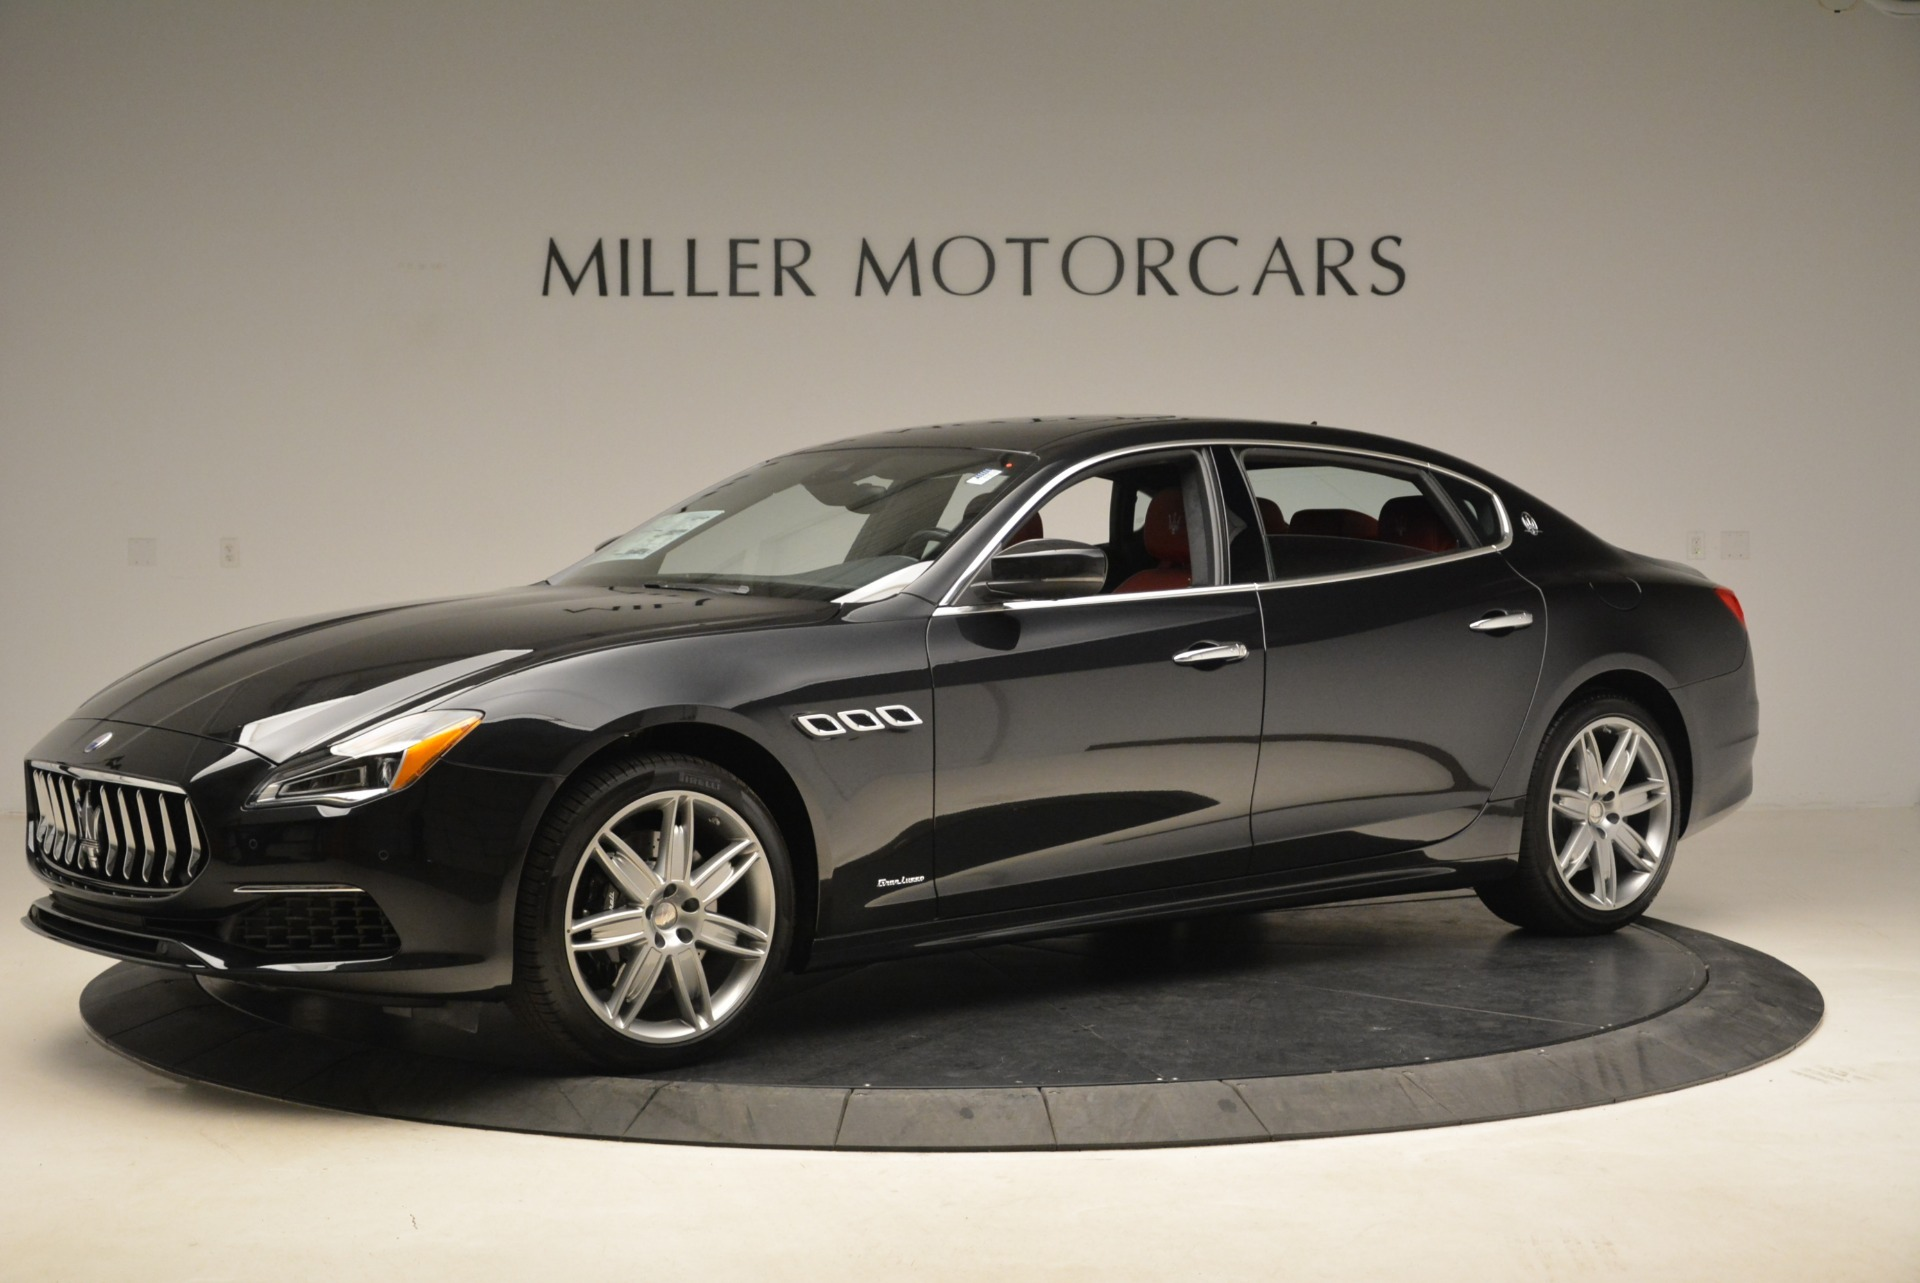 New 2018 Maserati Quattroporte S Q4 GranLusso For Sale In Greenwich, CT 2293_p2